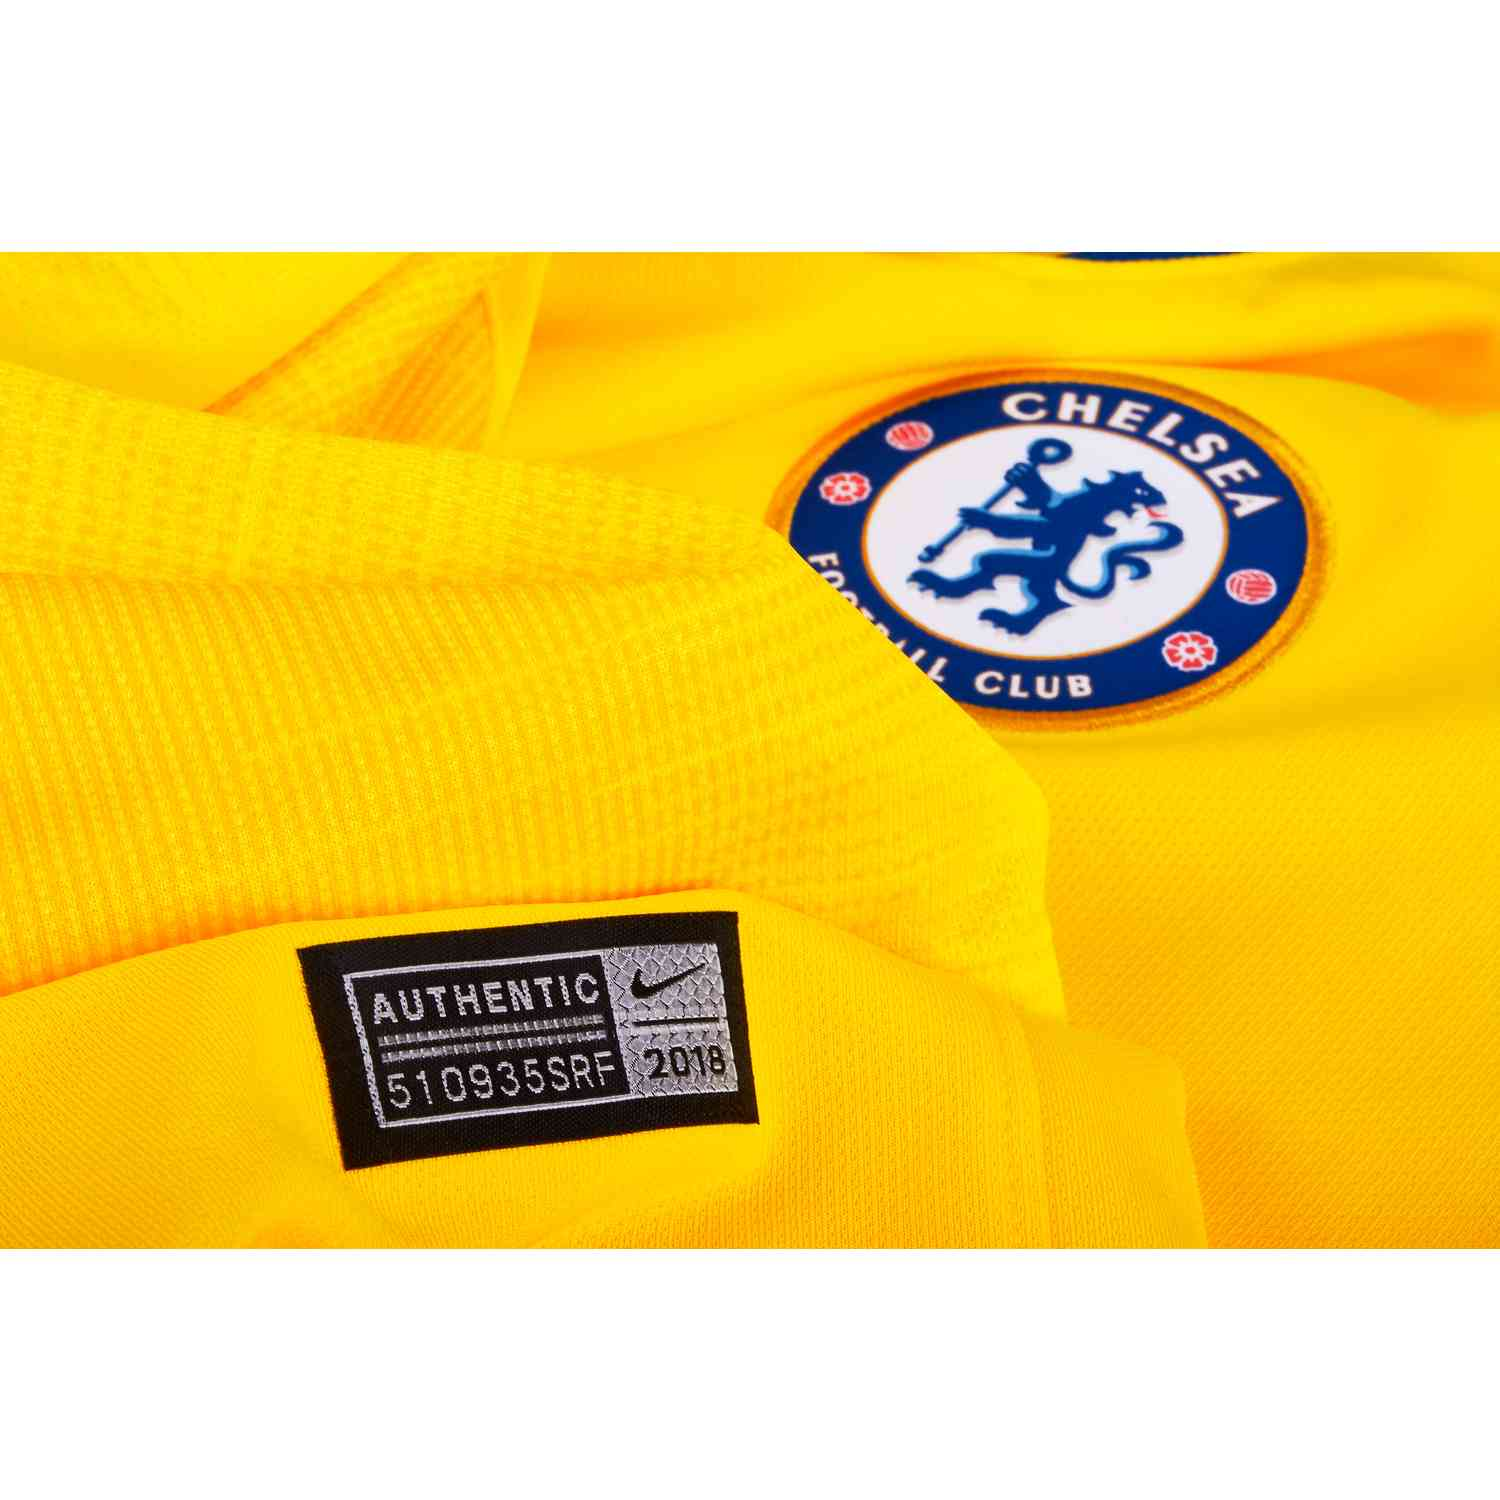 separation shoes b3cda e5831 Nike Chelsea Away Jersey - Youth 2018-19 - SoccerPro